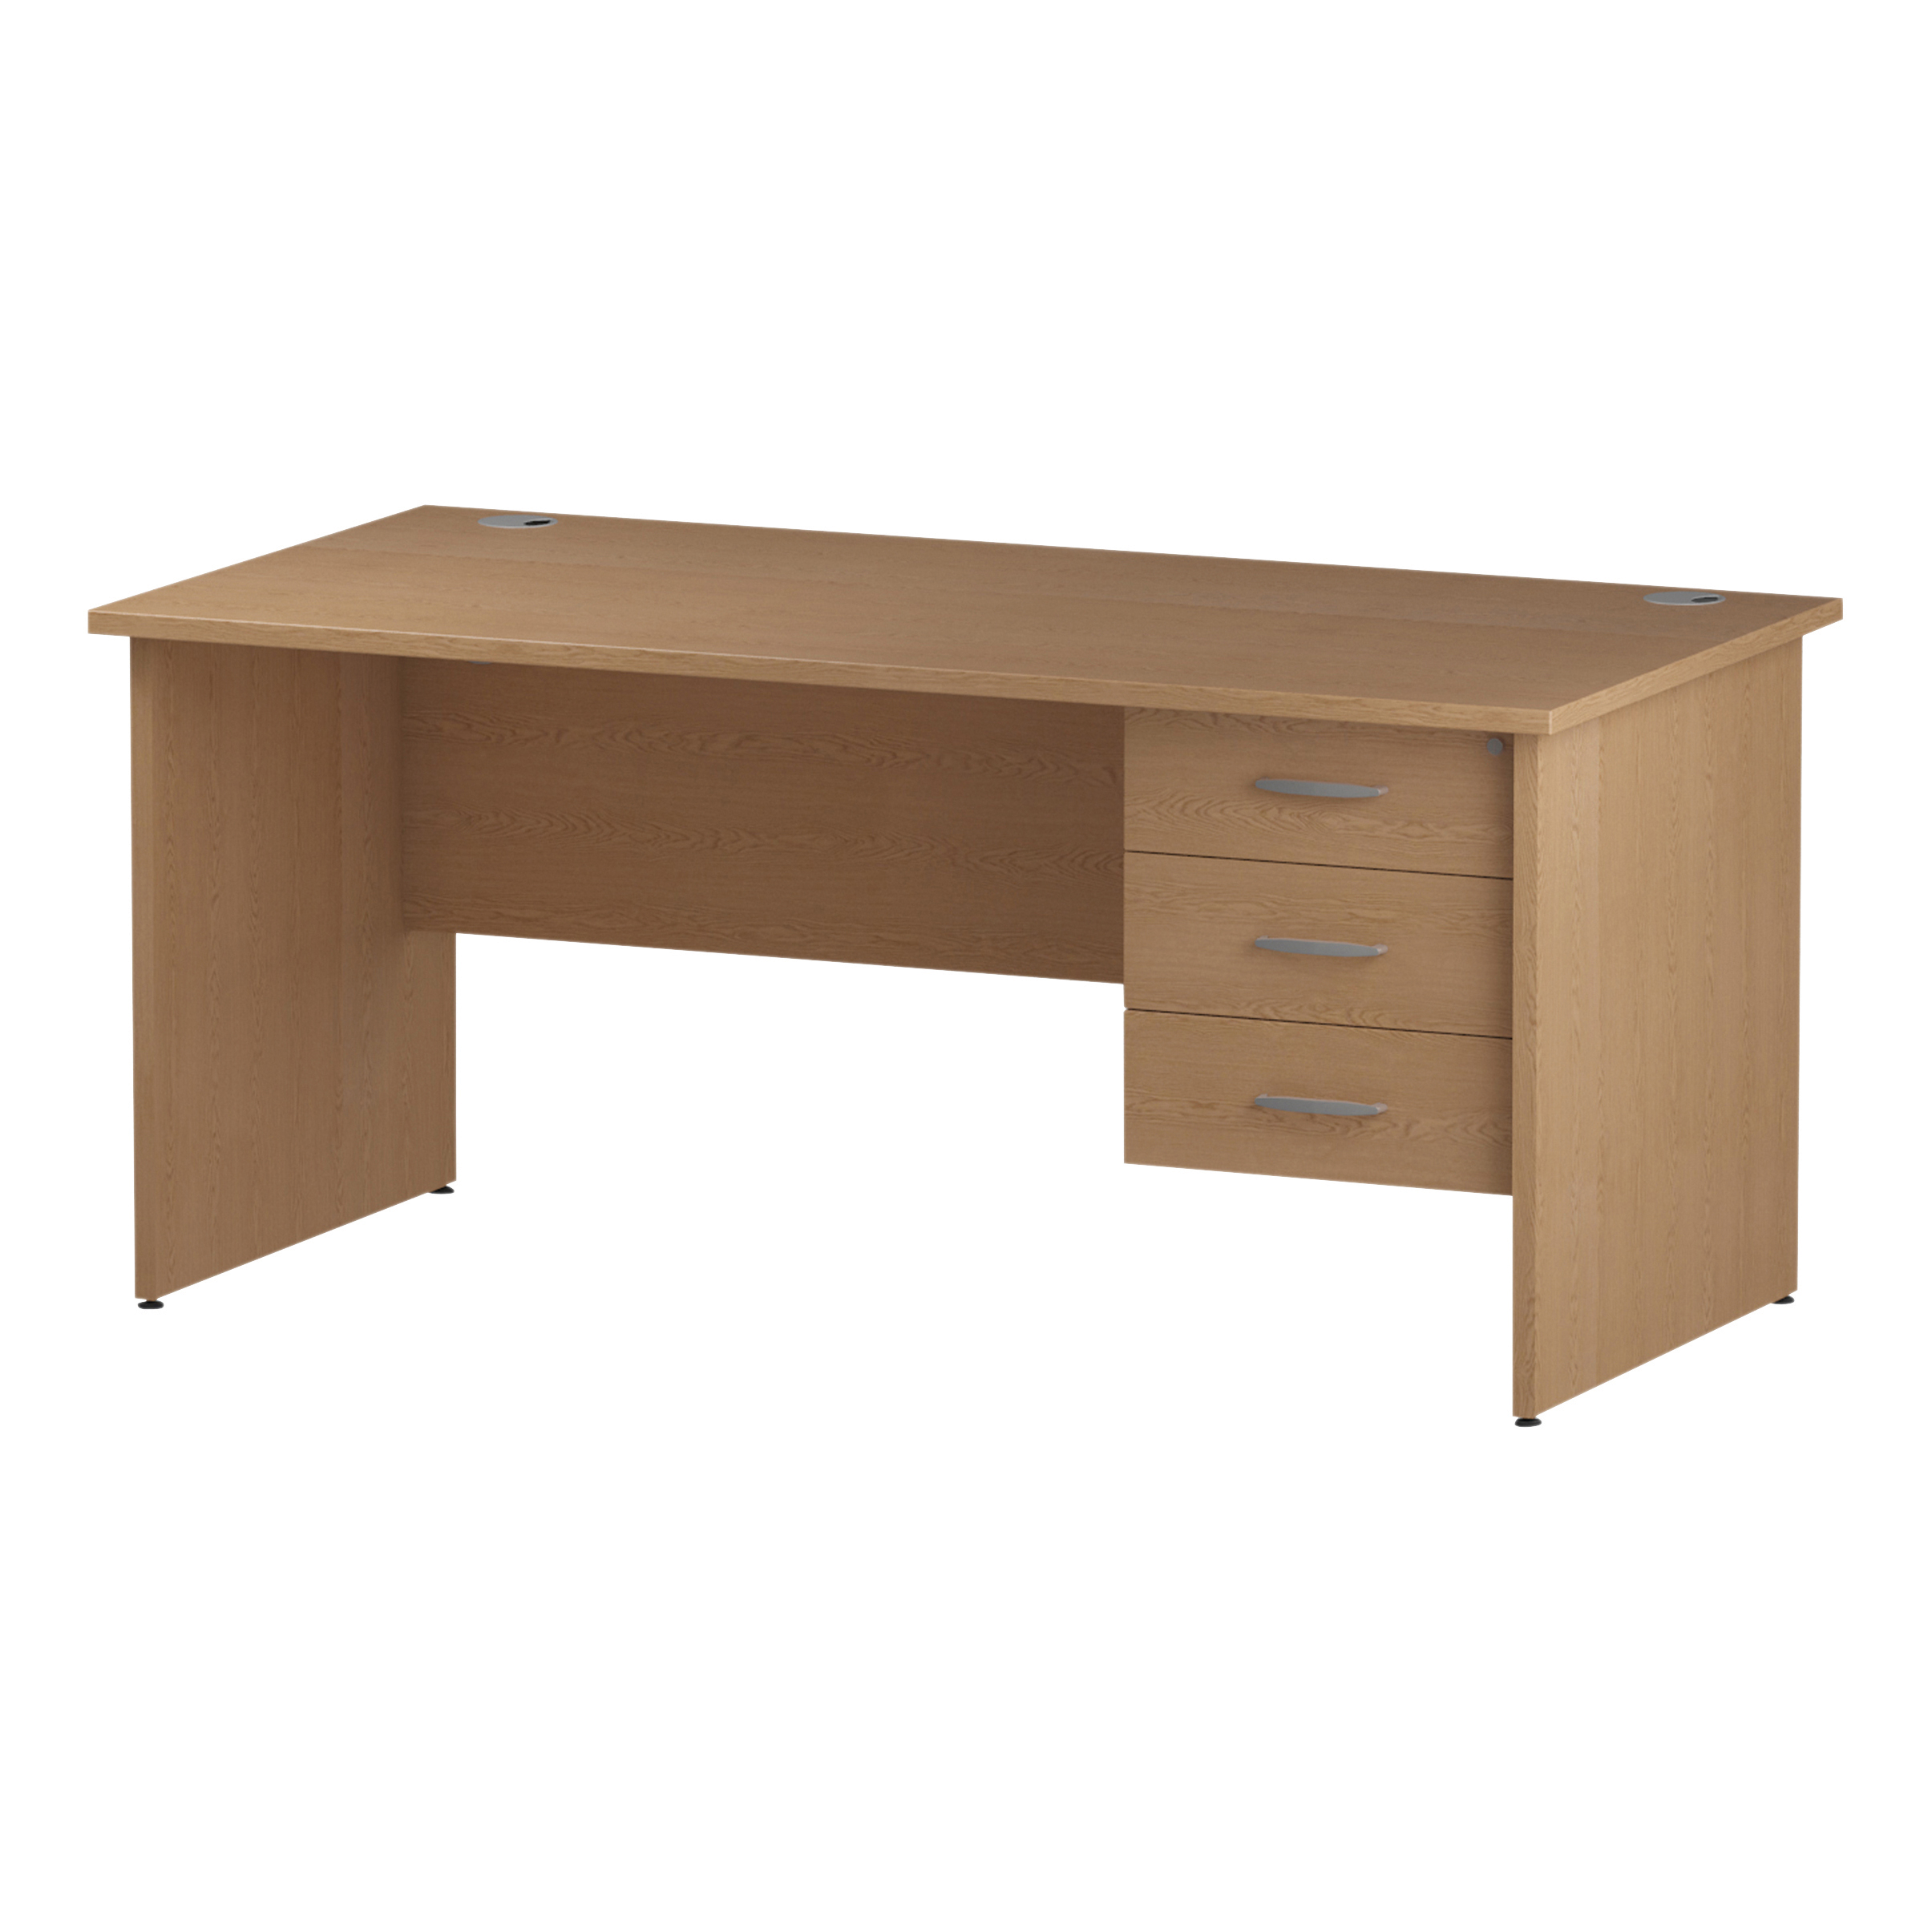 Trexus Rectangular Desk Panel End Leg 1600x800mm Fixed Pedestal 3 Drawers Oak Ref I002708